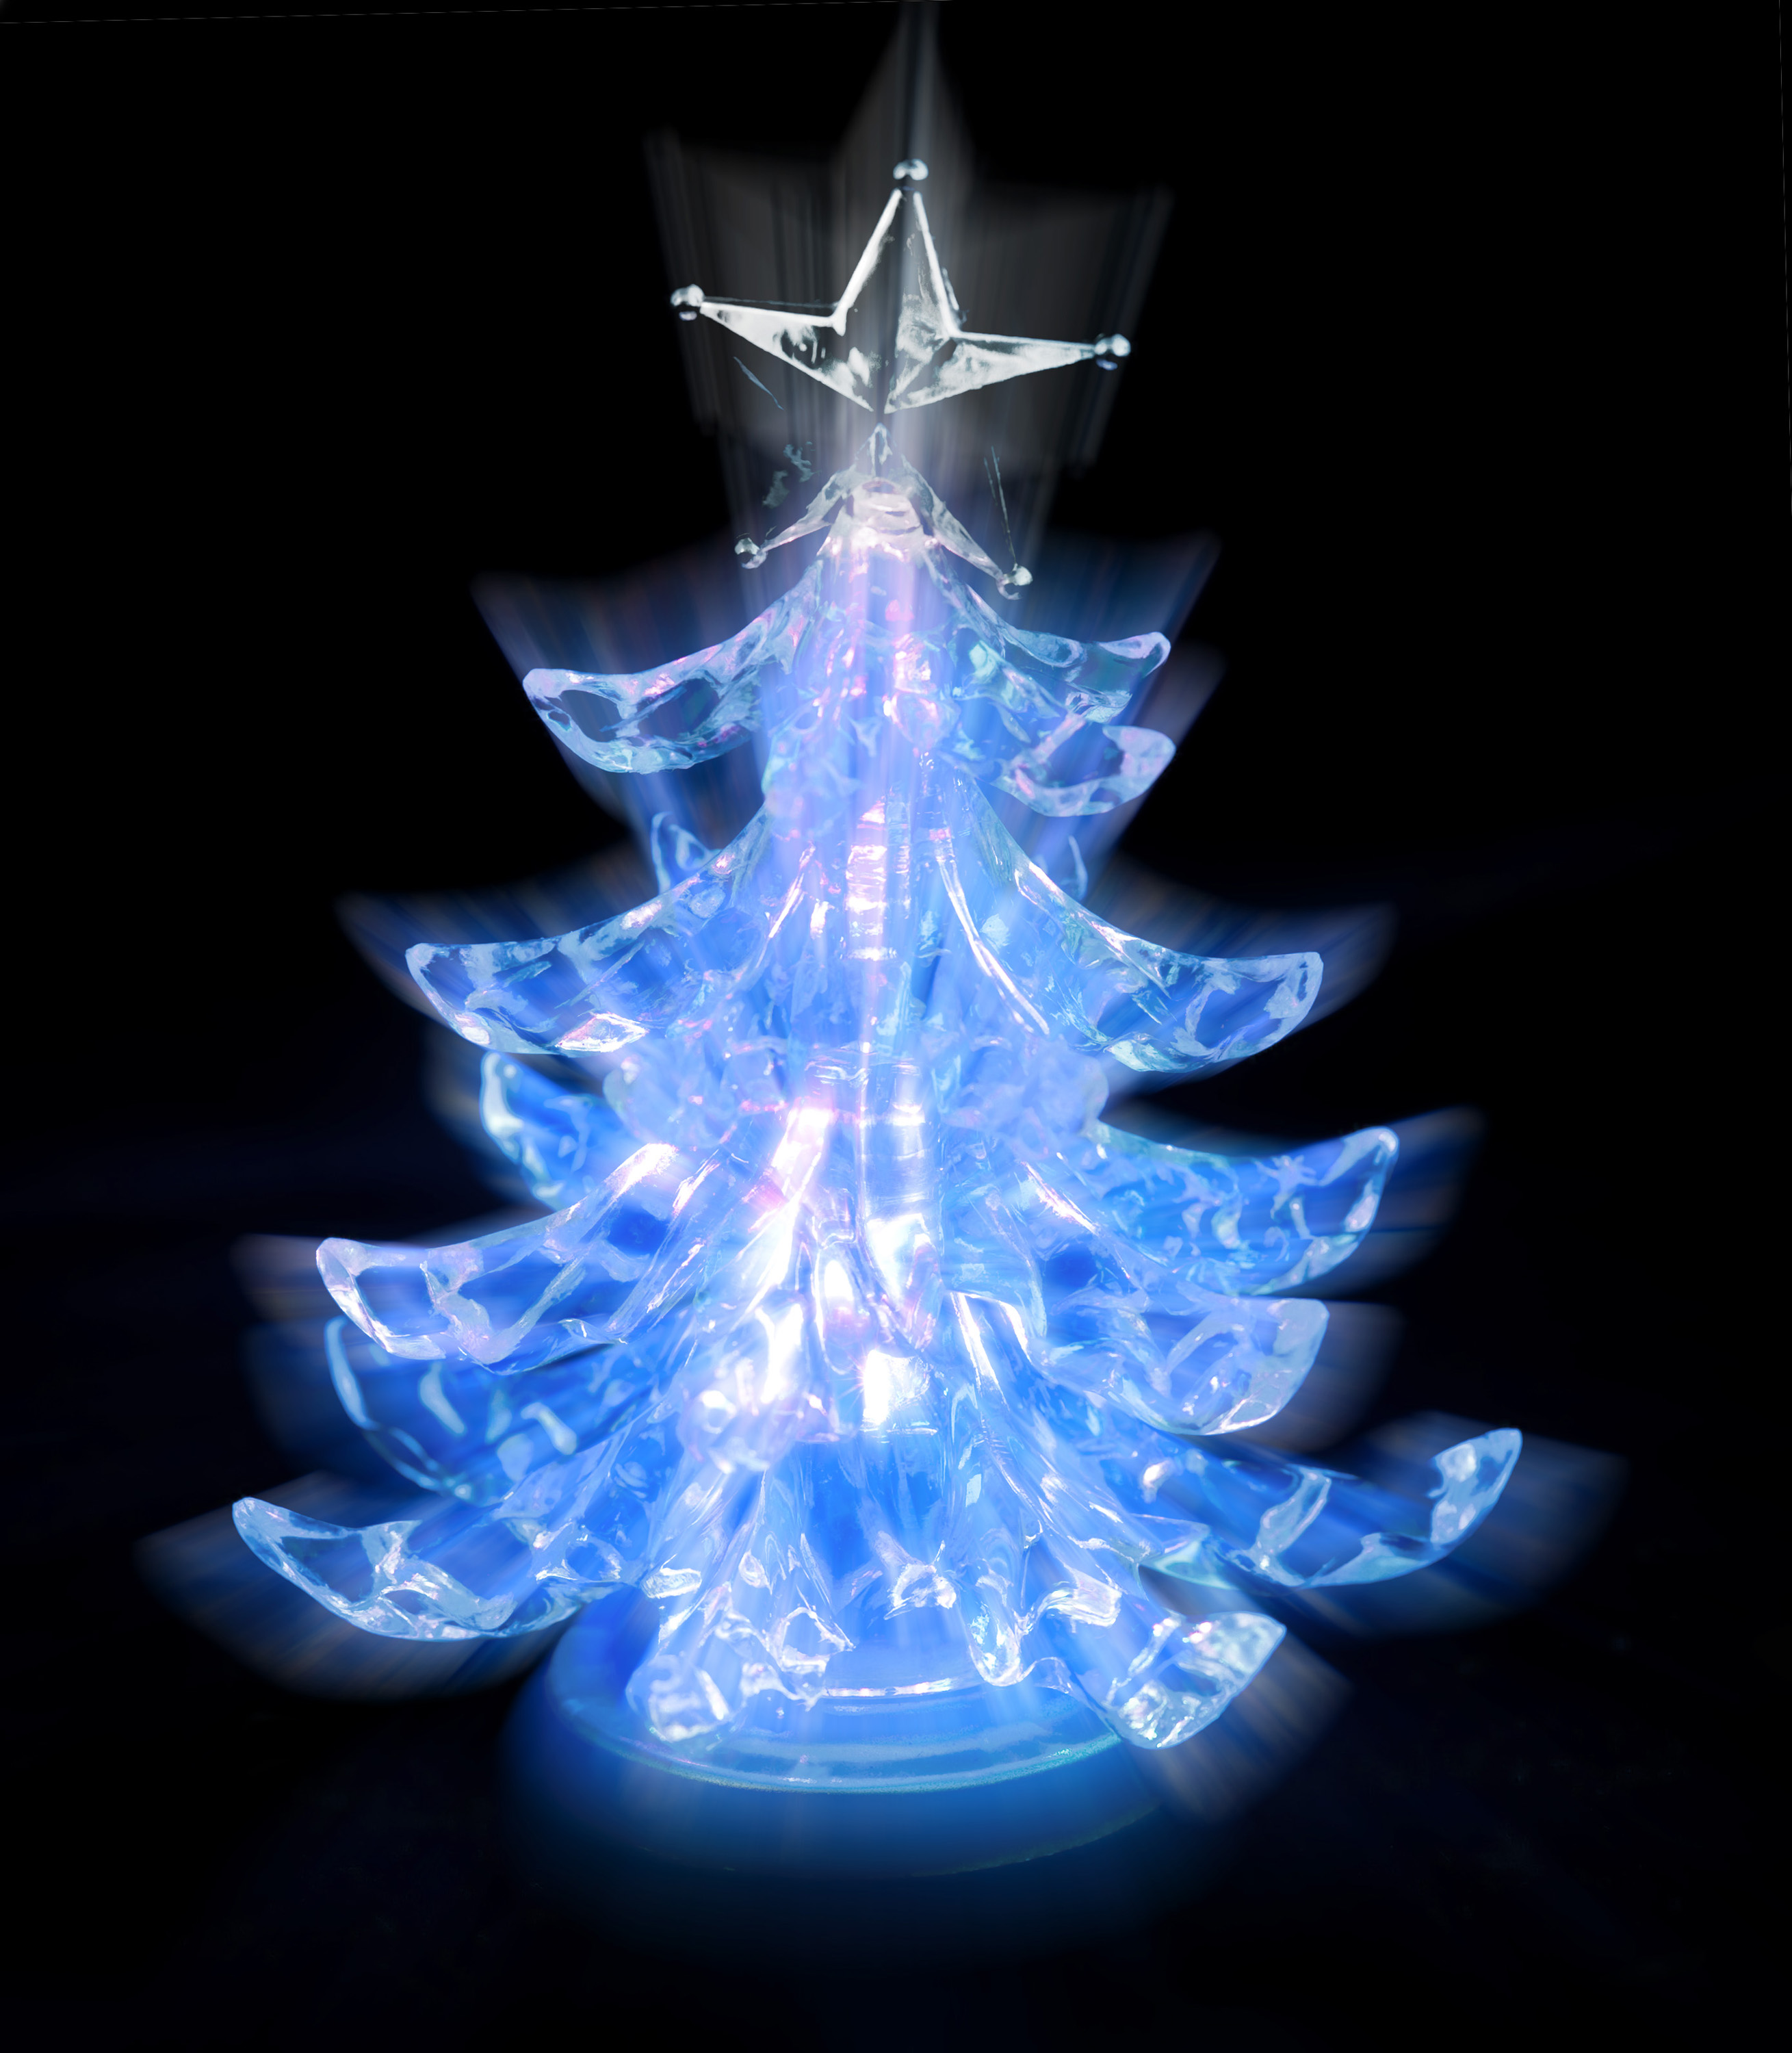 rays of light shining from a christmas tree shaped lamp